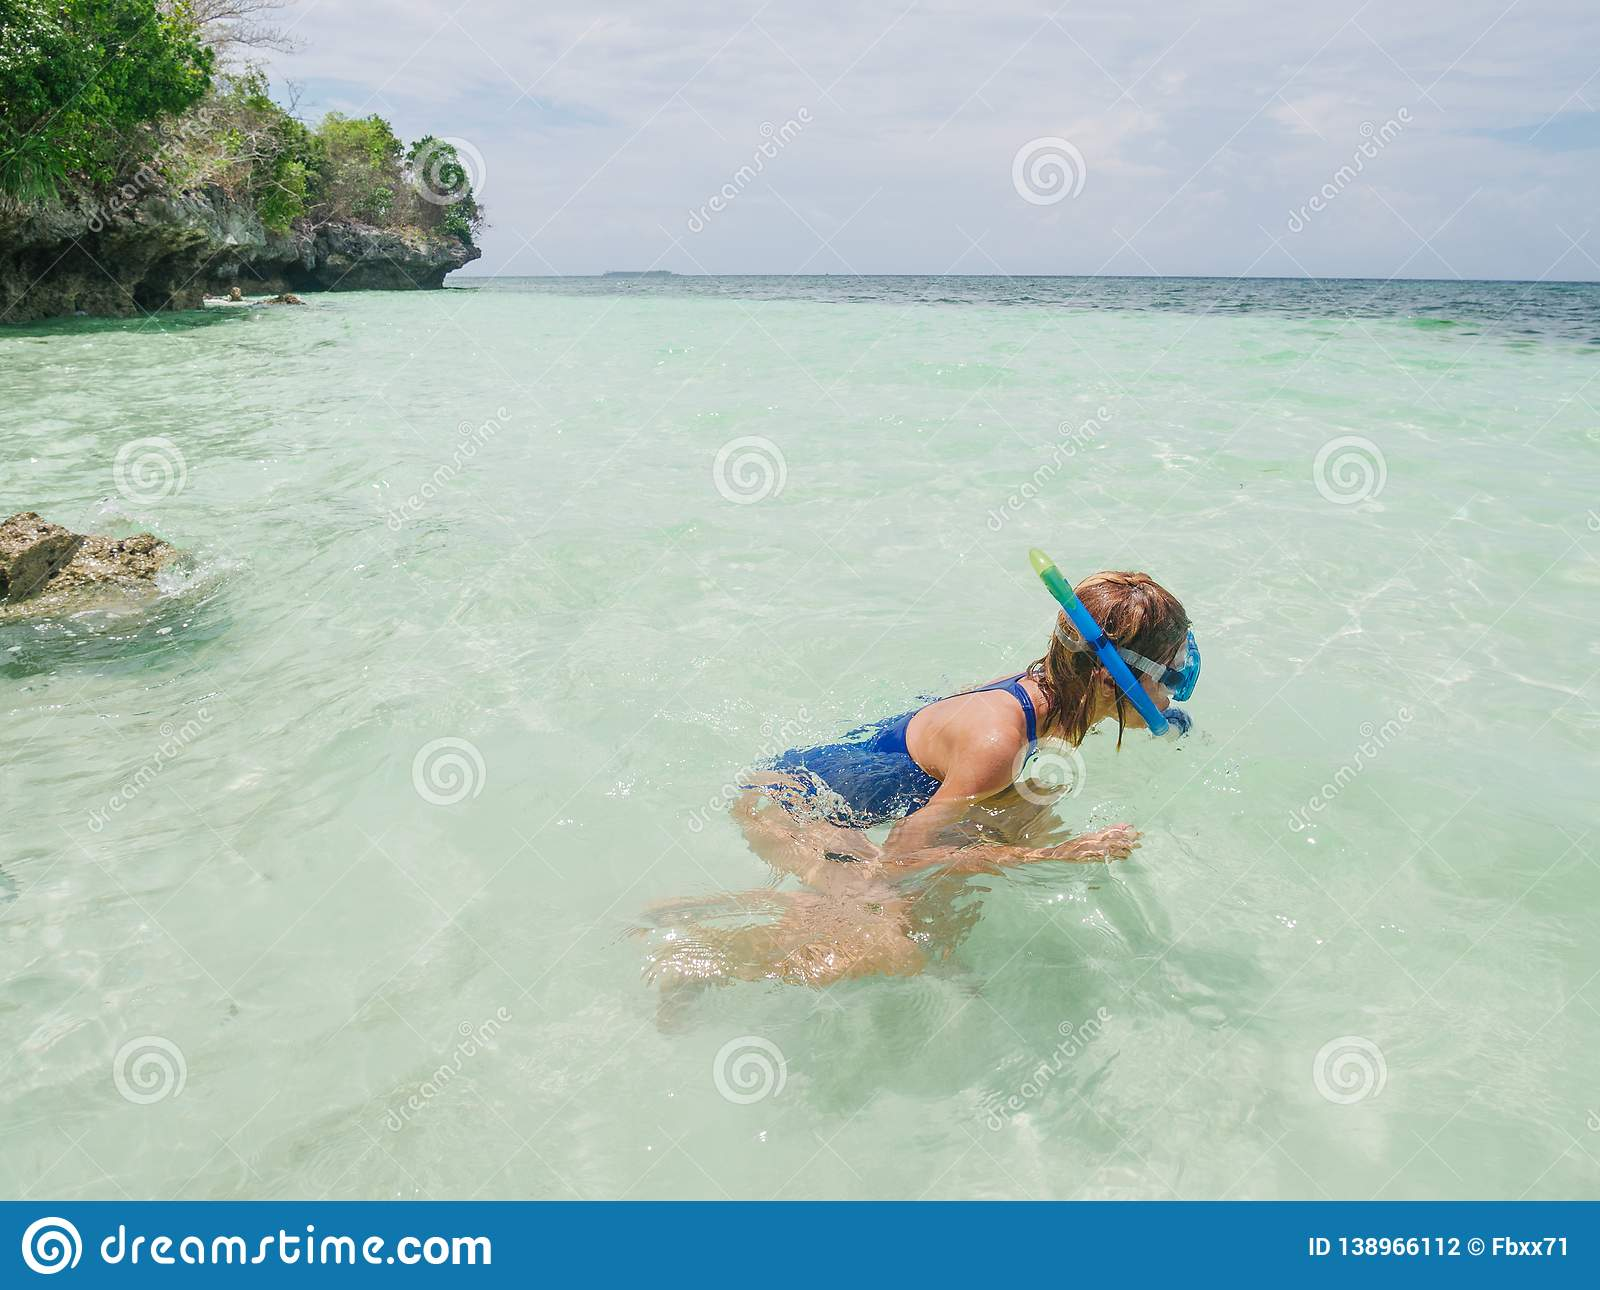 Woman snorkeling on coral reef tropical caribbean sea, turquoise blue water. Indonesia Banda archipelago, Moluccas Maluku, tourist